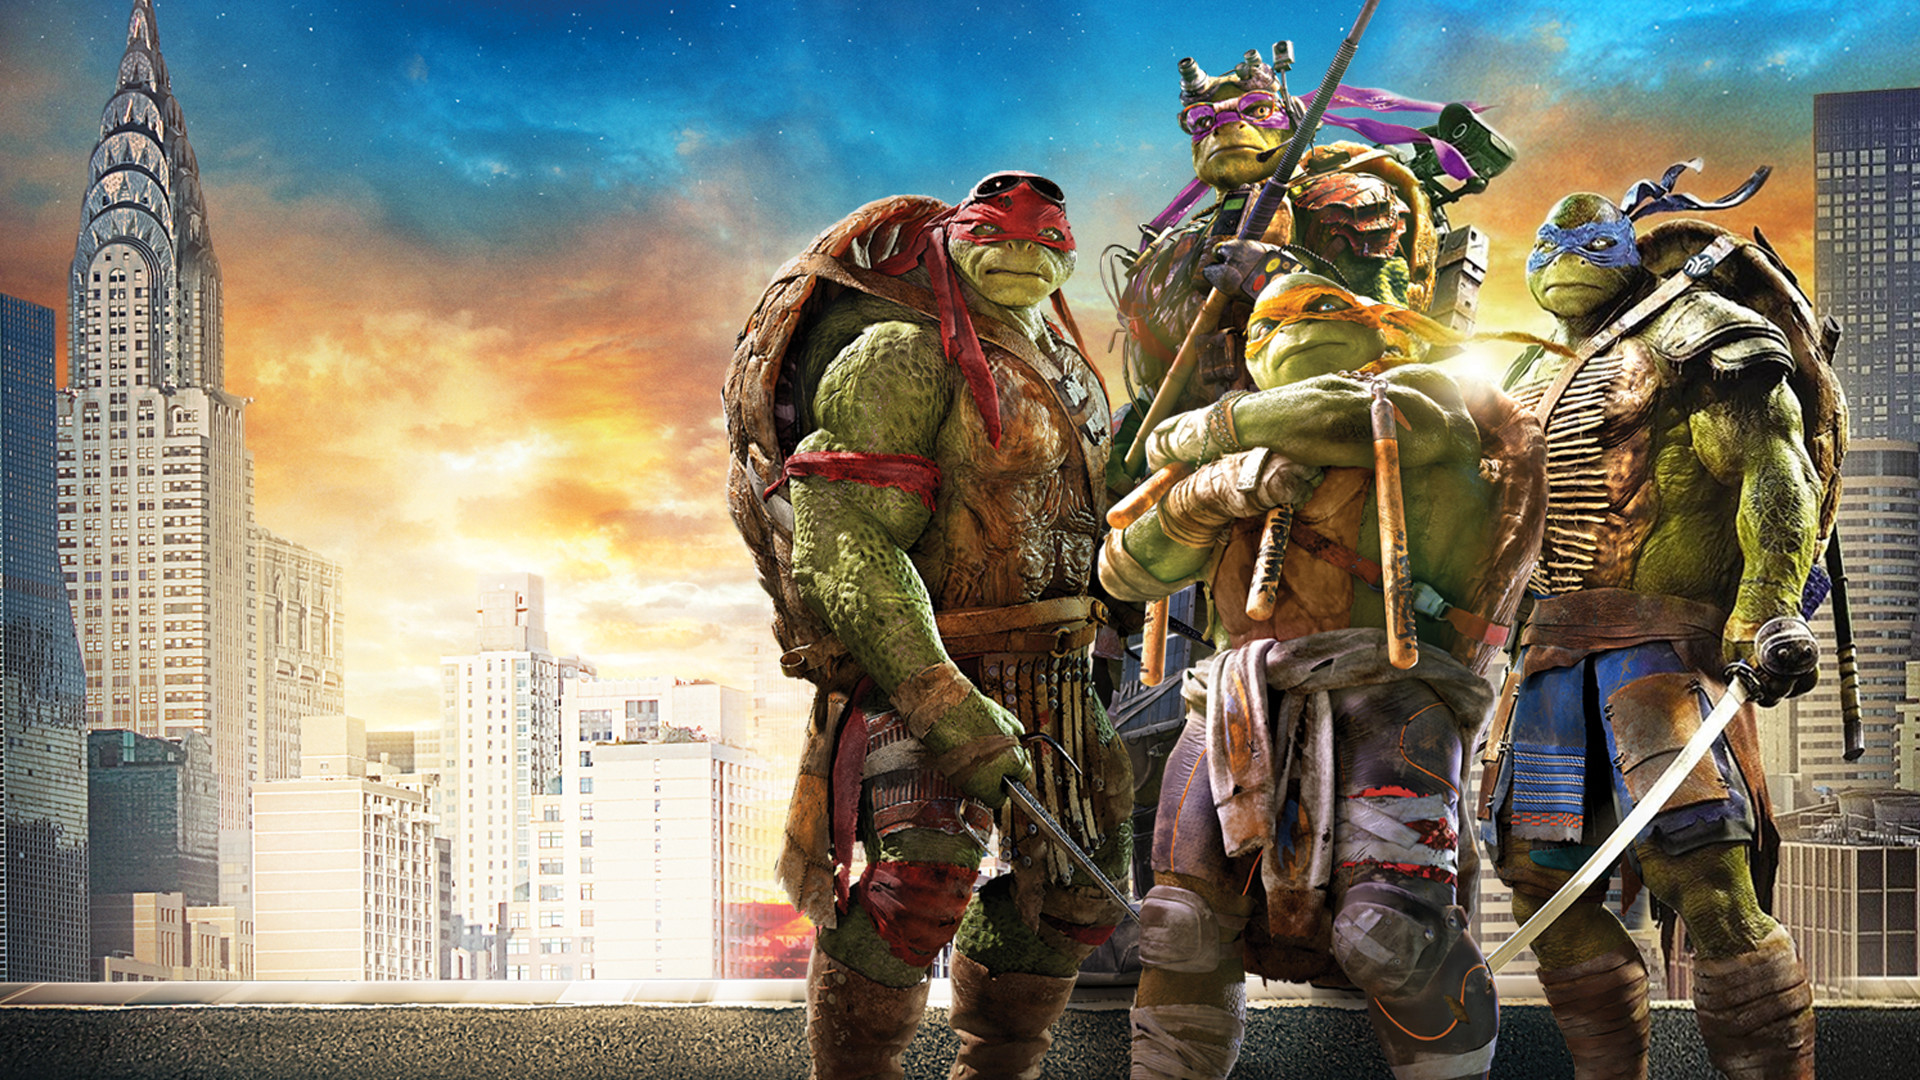 1920x1080 Teenage mutant ninja turtles high resolution wallpaper.